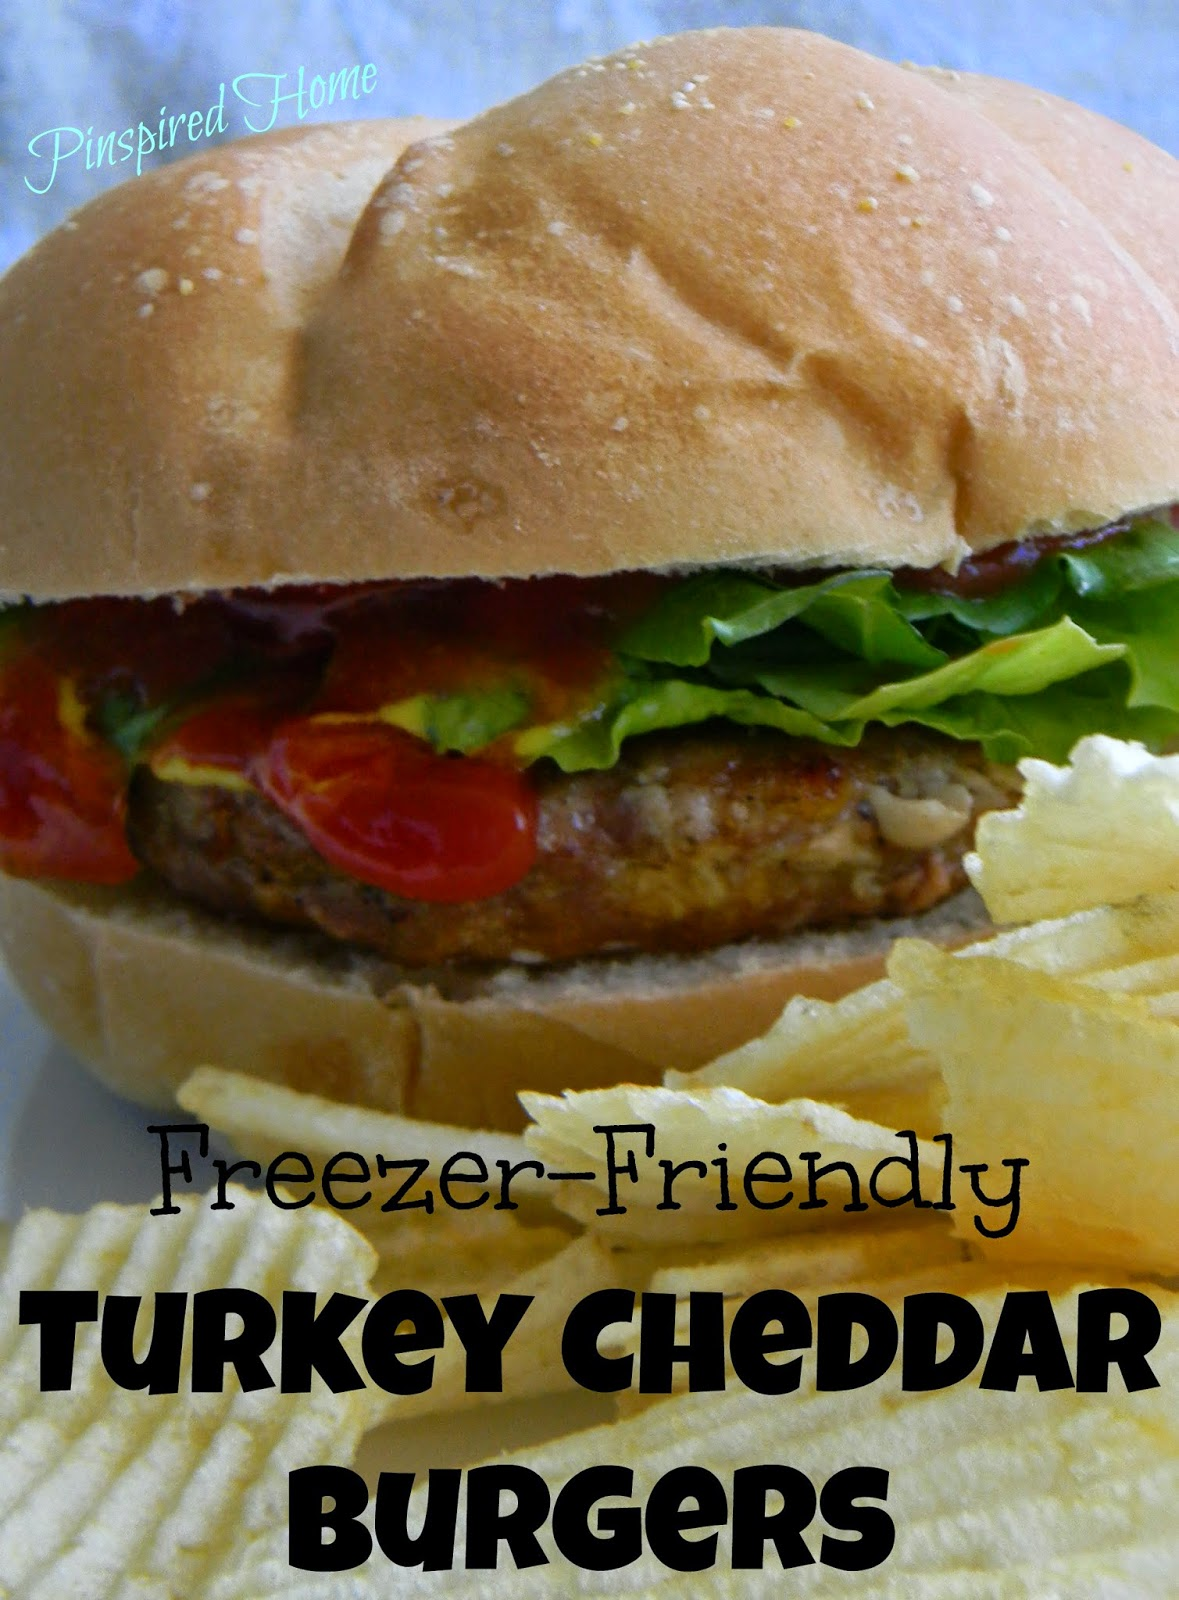 http://pinspiredhome.blogspot.com/2014/06/freezer-friendly-turkey-cheddar-burgers.html